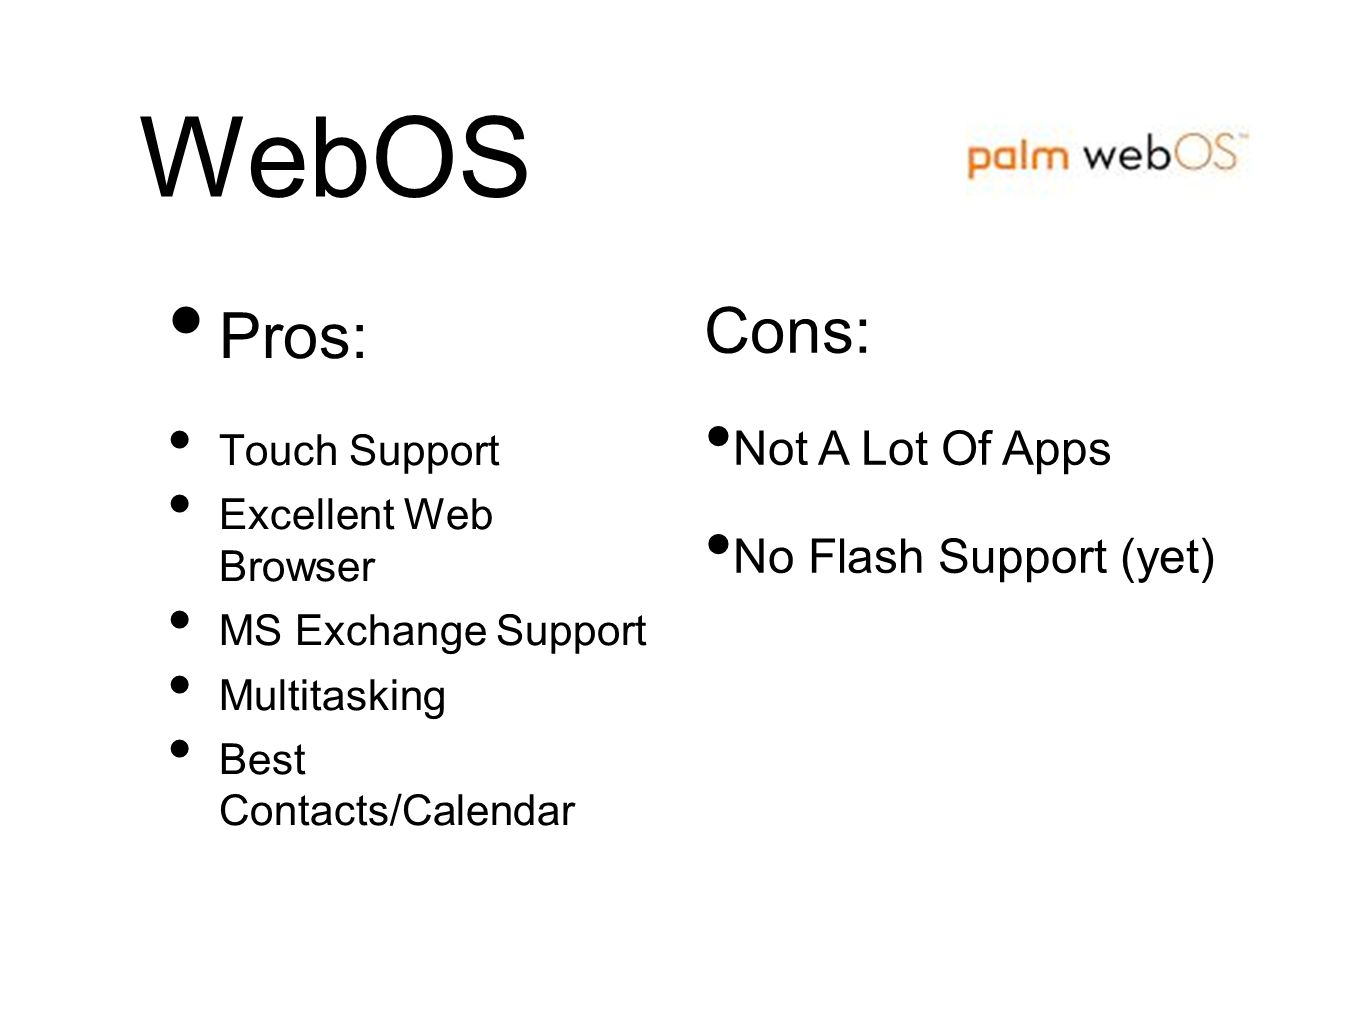 WebOS Pros: Touch Support Excellent Web Browser MS Exchange Support Multitasking Best Contacts/Calendar Cons: Not A Lot Of Apps No Flash Support (yet)